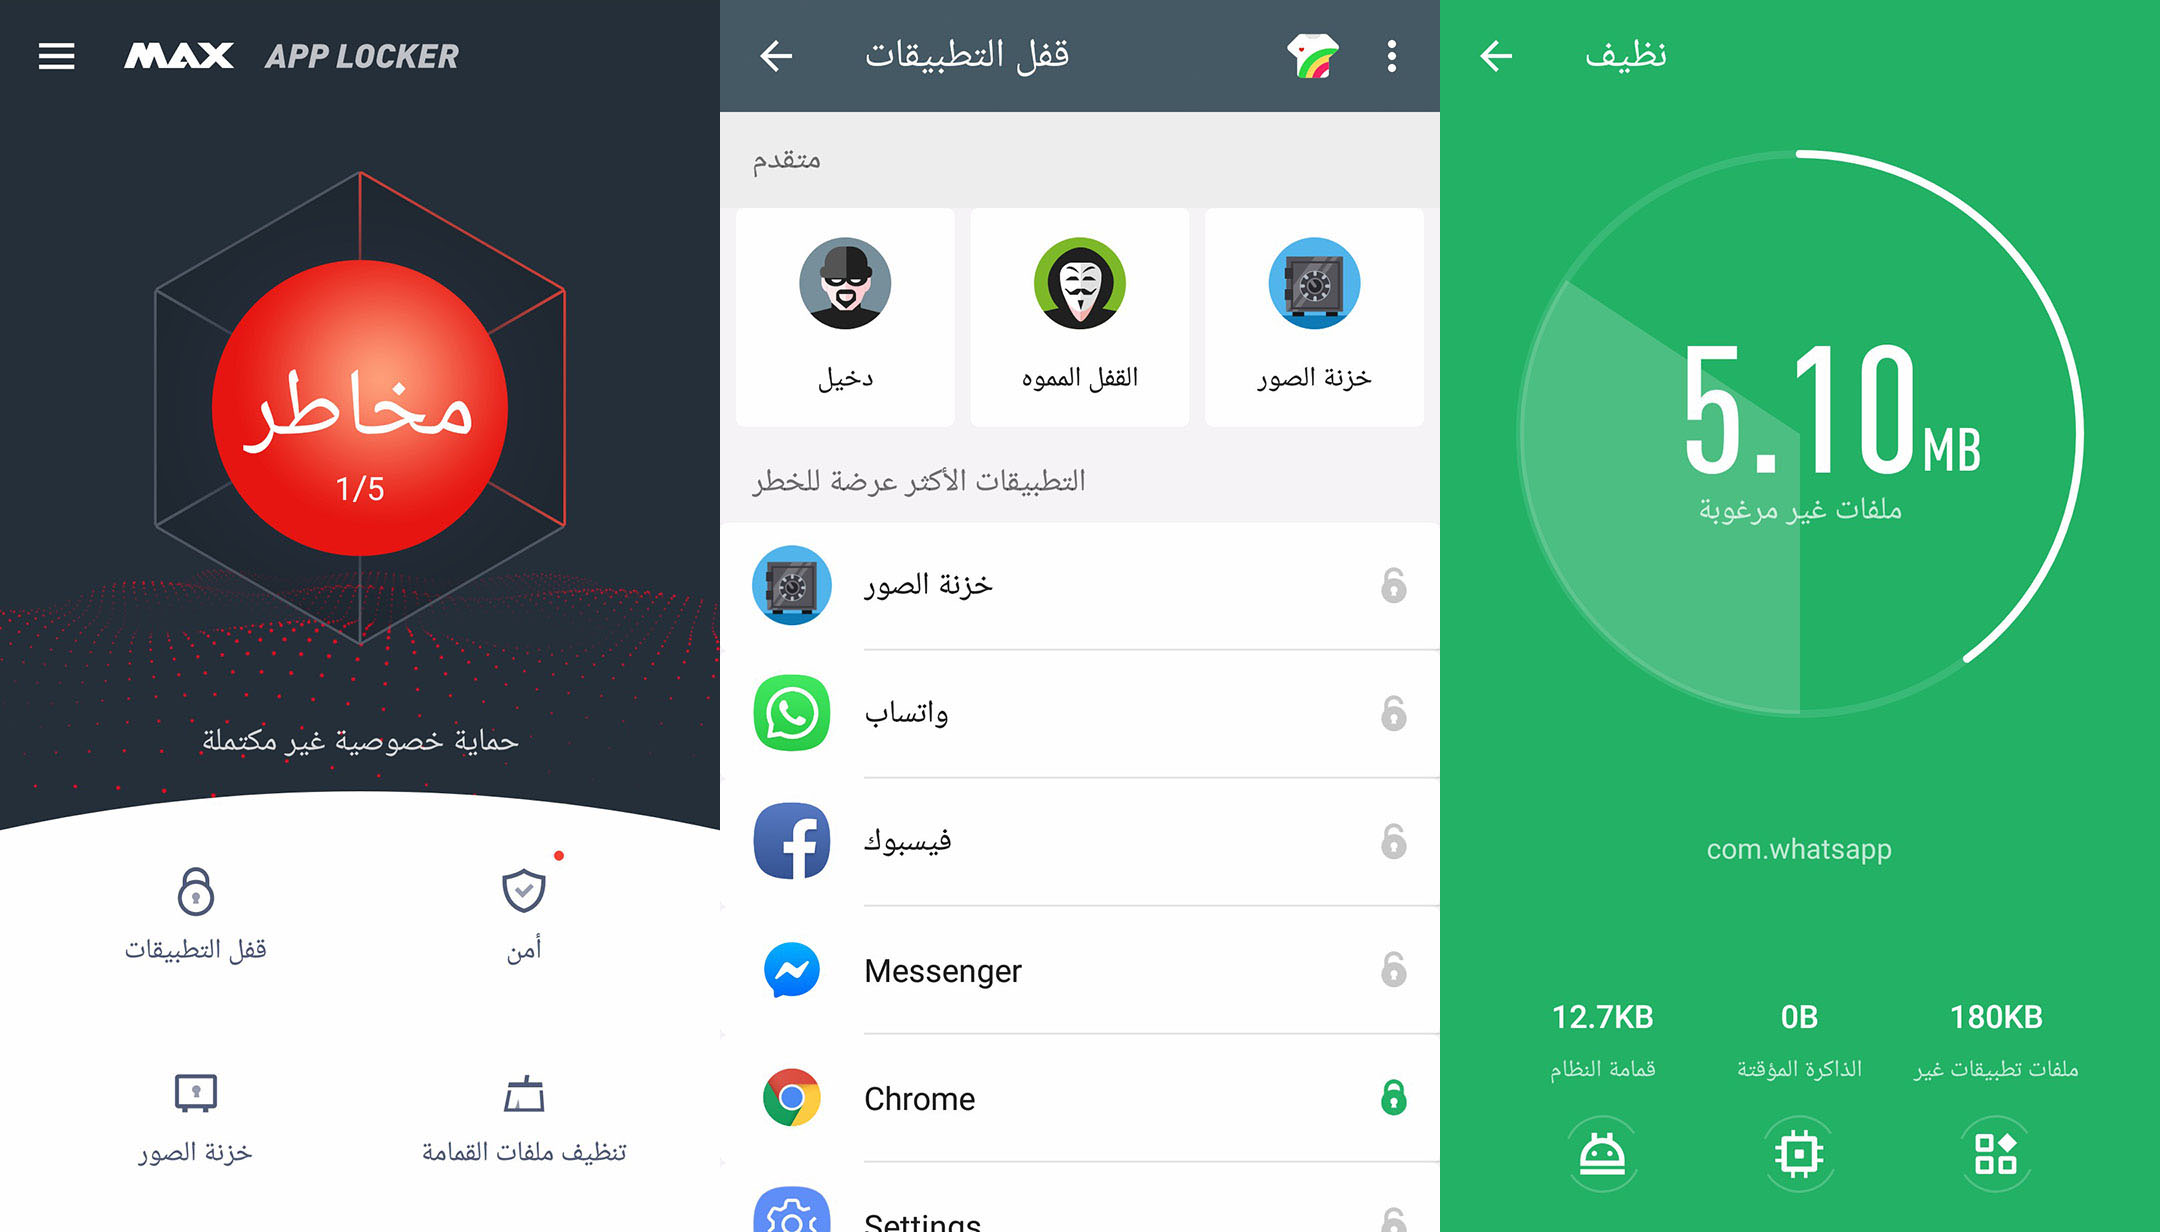 Download Max Applock App Locker Security Center Latest Version For Android Free